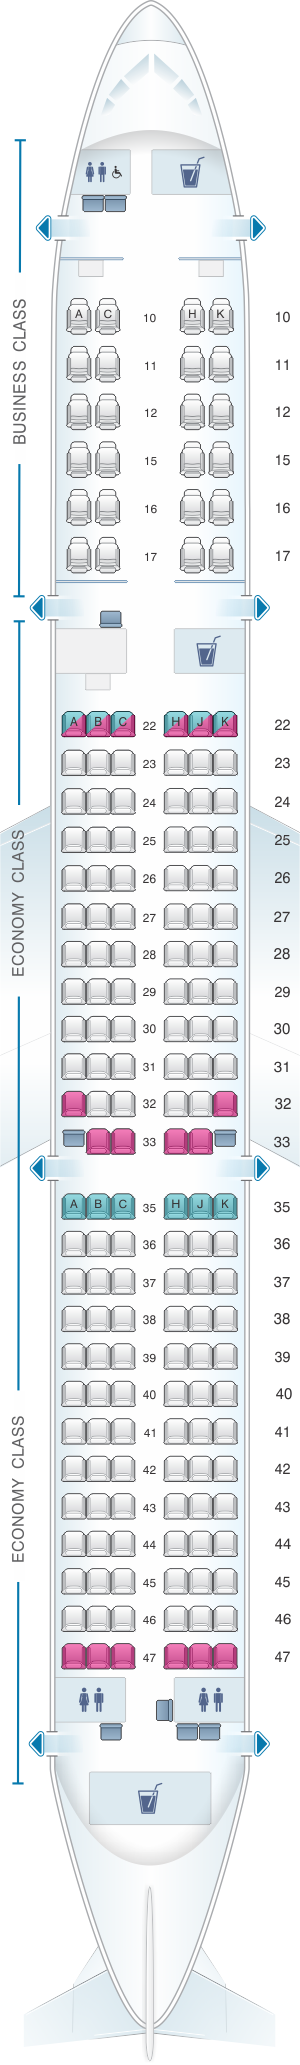 Seat map for Cathay Pacific Airways Cathay Dragon Airbus A321 200